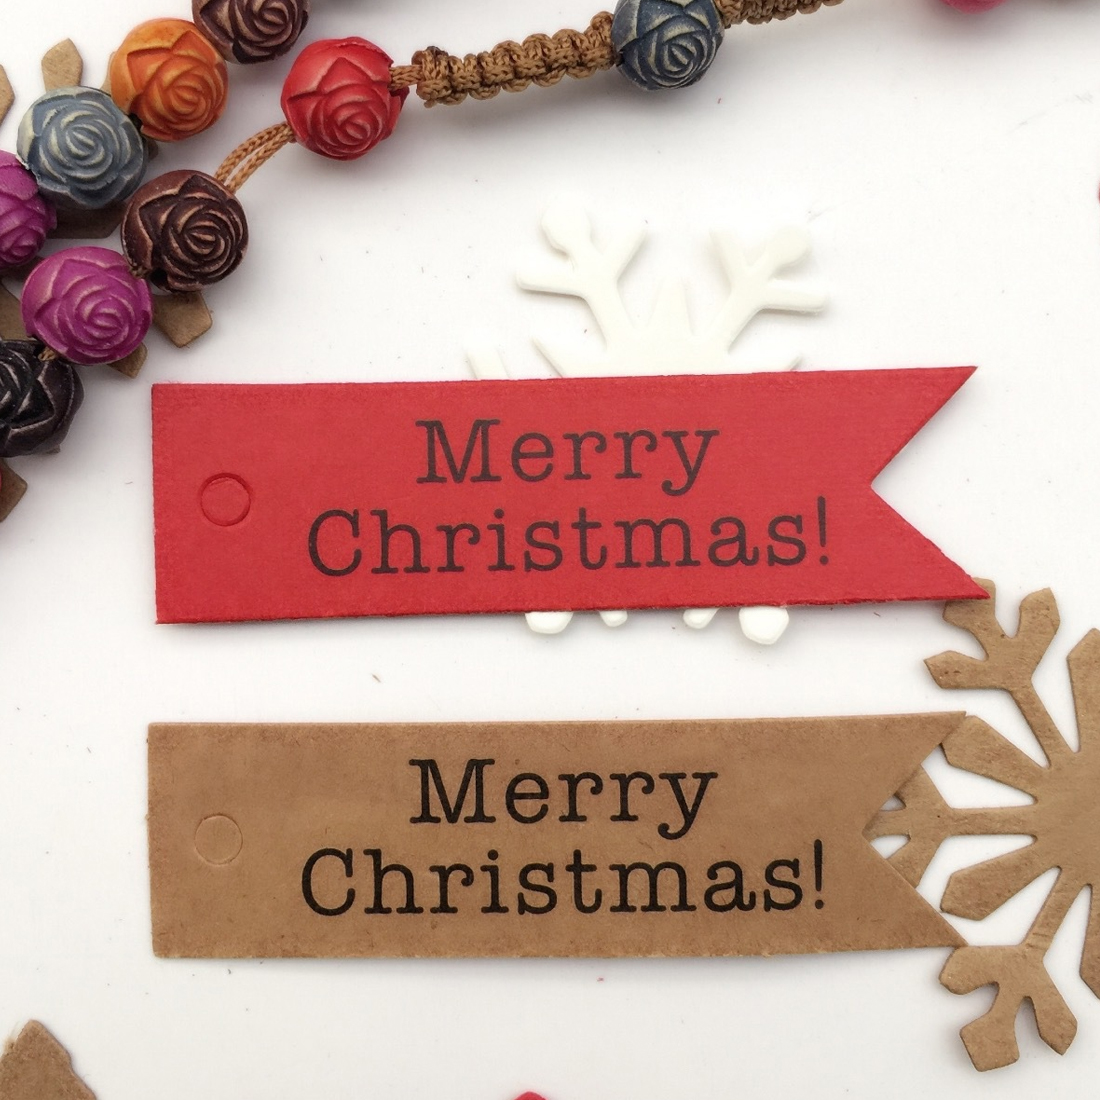 Decor Wholesale 100pcs Decorative Merry Christmas Paper Gift Tags Label Hanging Cards DIY Home Party Christmas Accessories